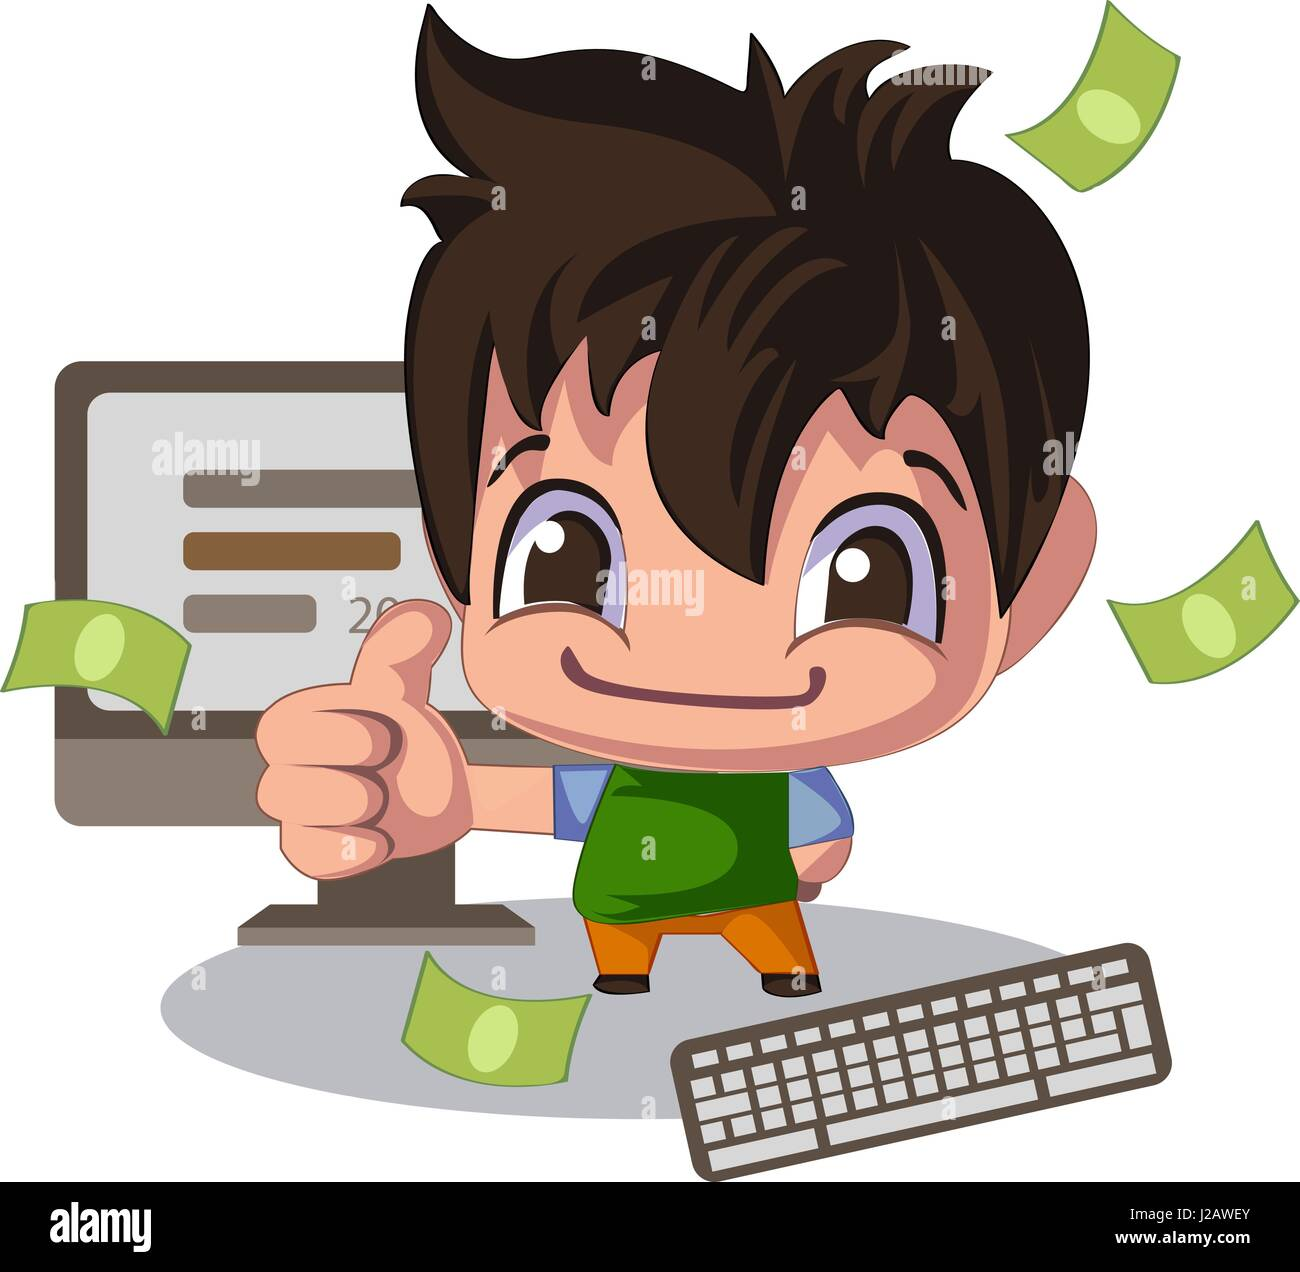 Man In A Cartoon Style Thumb Up Sales Manager Or Illustration Of